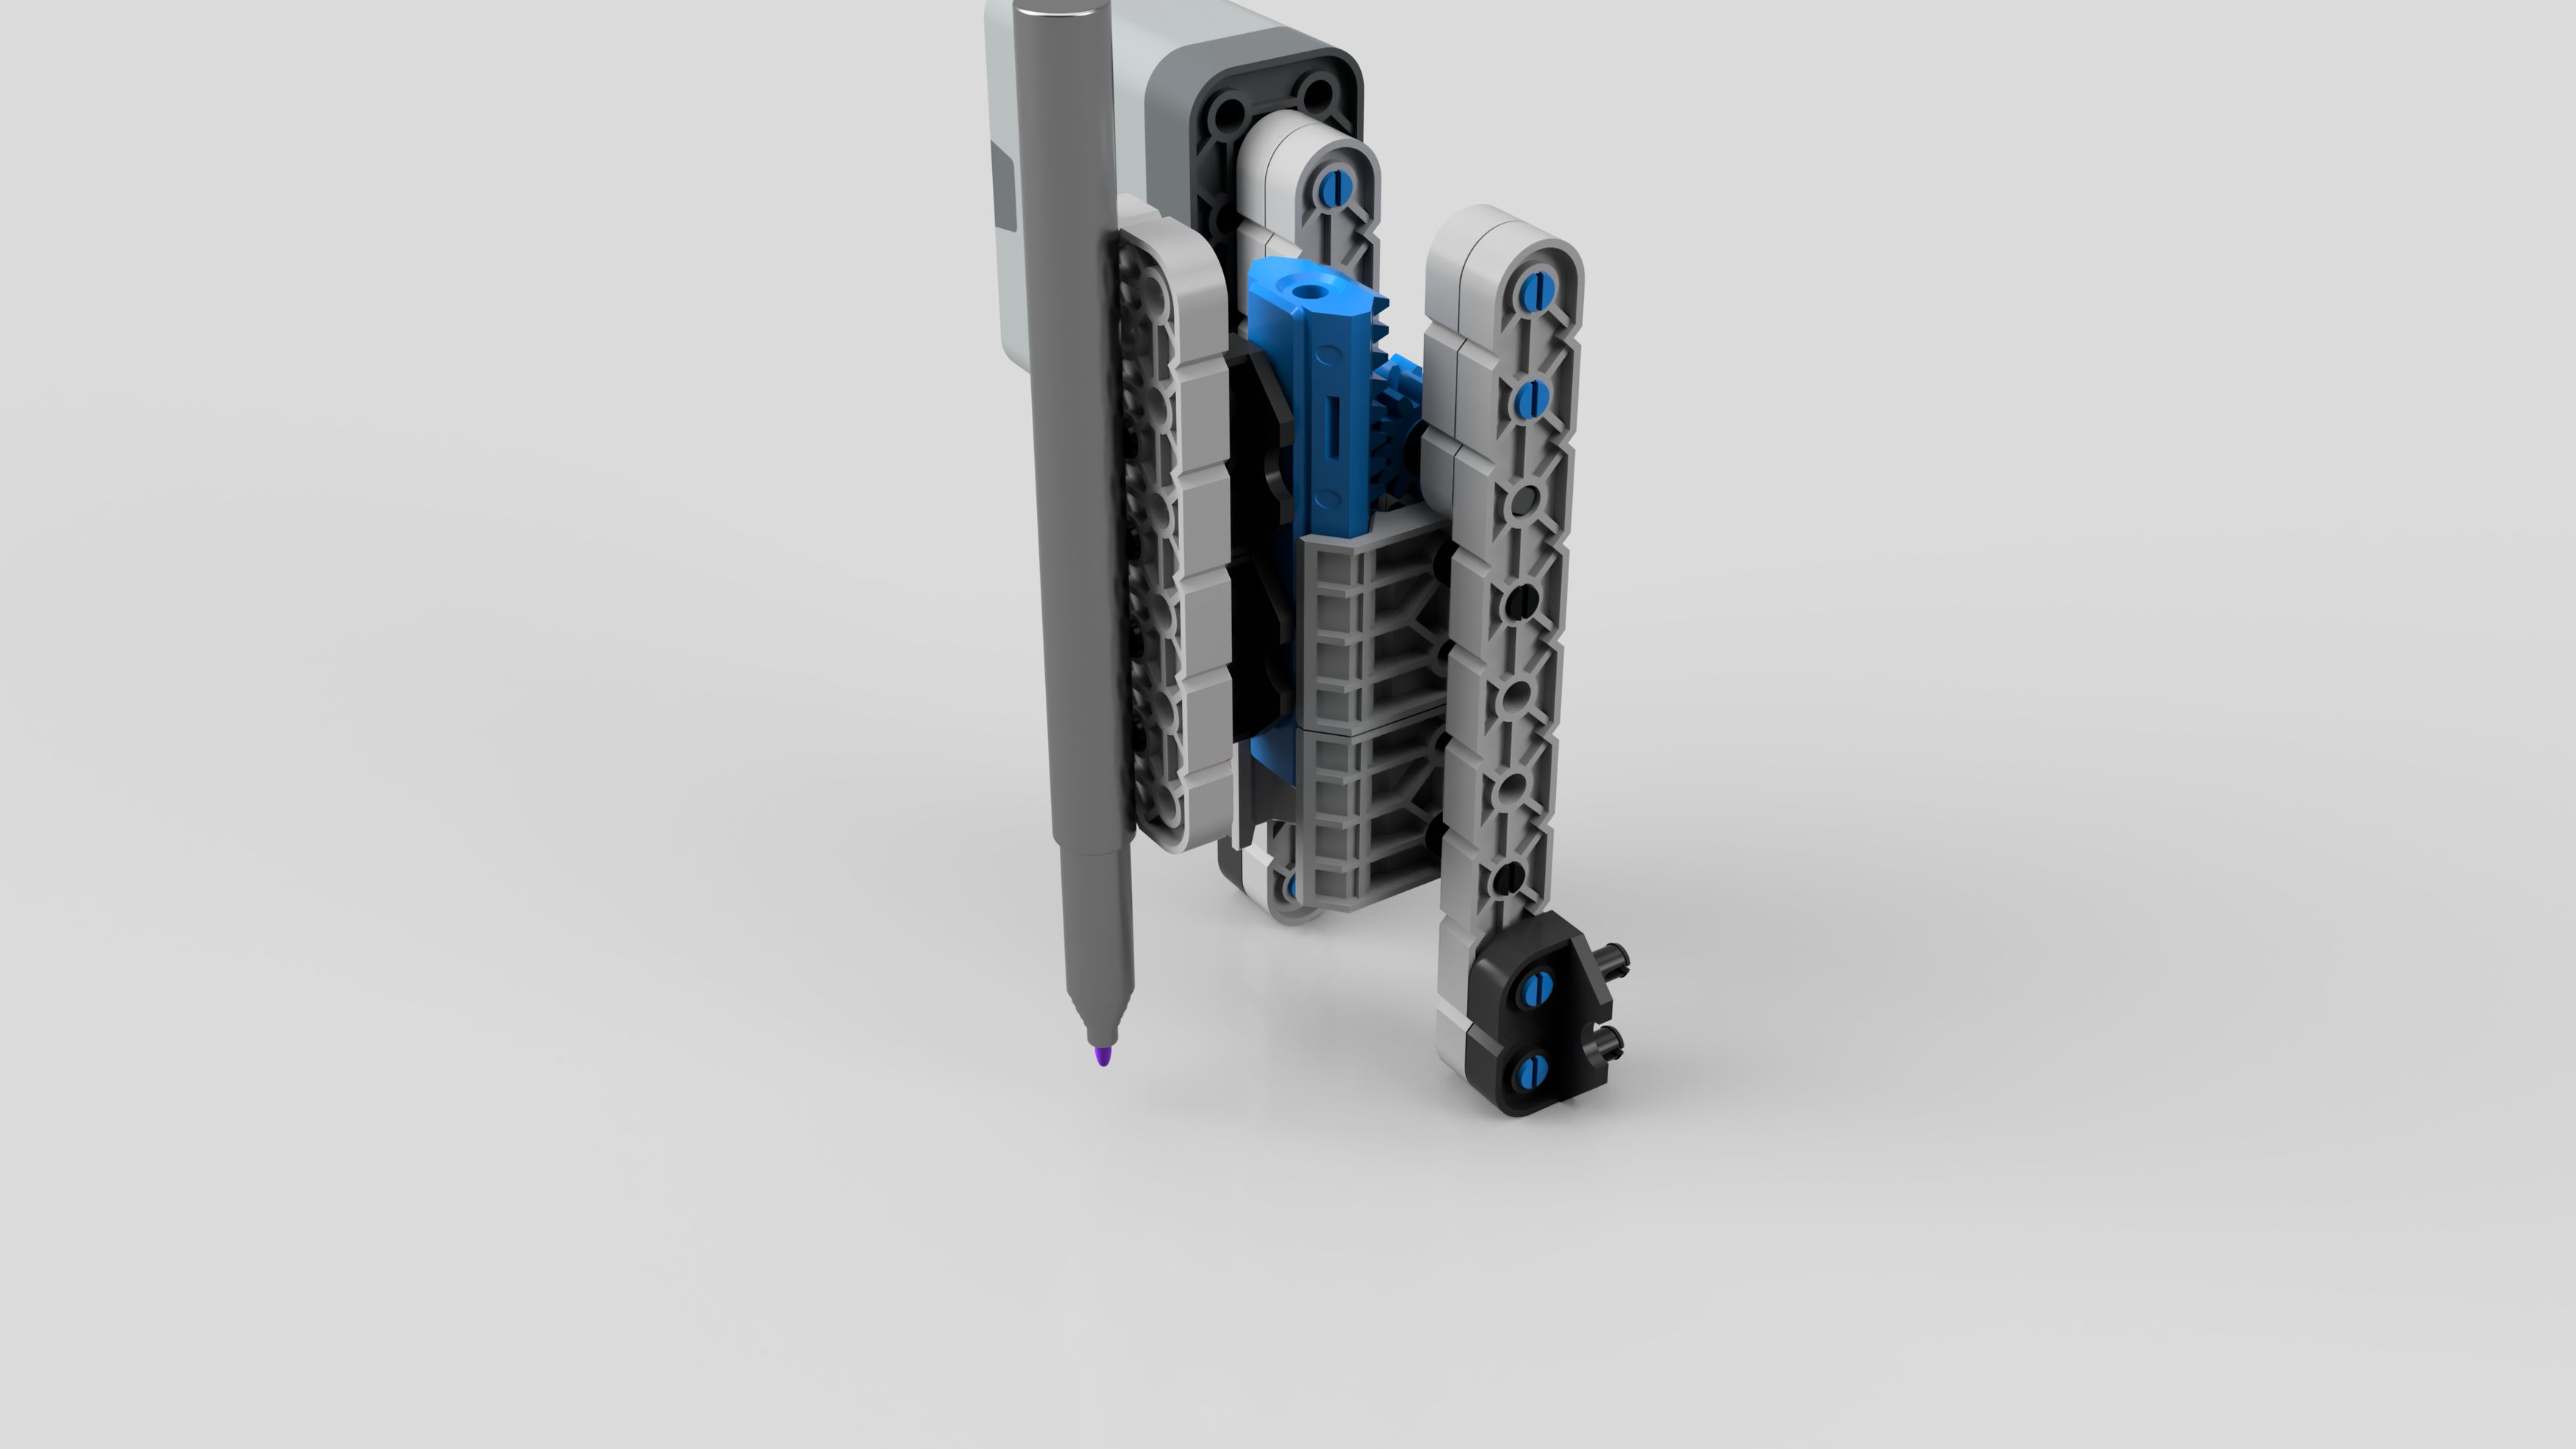 Robotic-pen-vex-iq---vexcode-vr-2020-may-21-04-42-16pm-000-customizedview27411633685-png-3500-3500